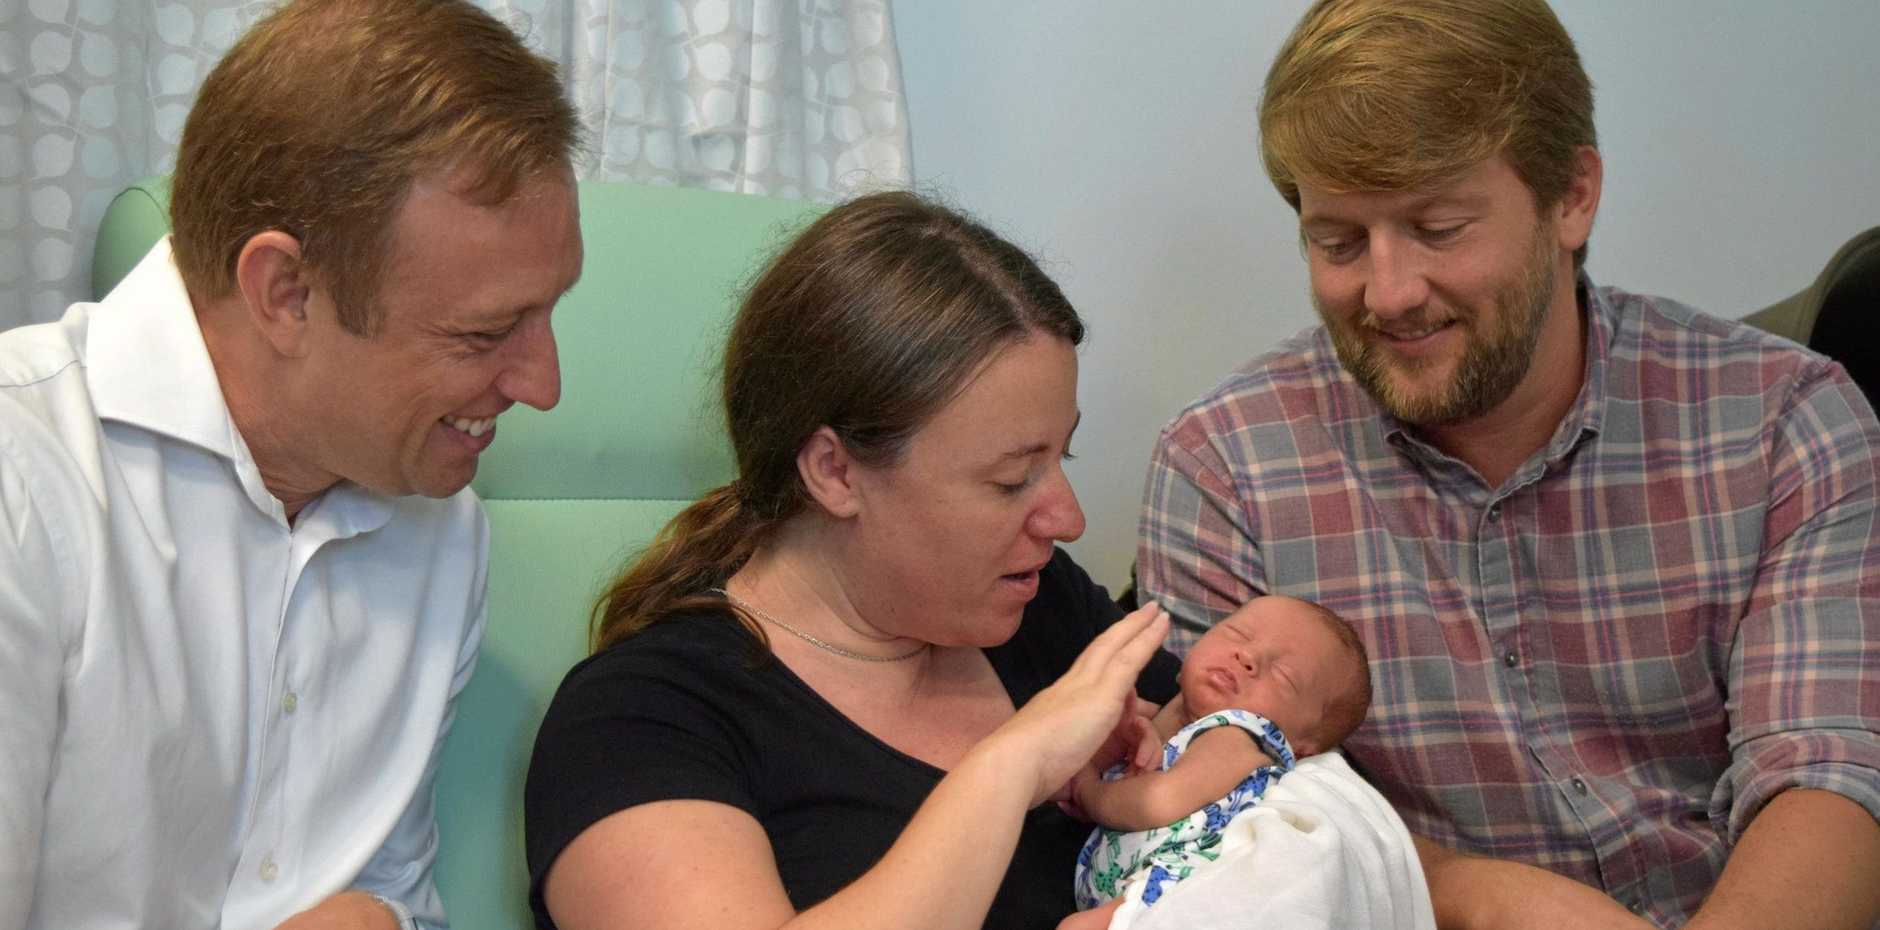 Queensland Health Minister Steven Miles met with new parents Natalie and Stephen Quinn, along with their new bundle of joy, Felix, at Sunshine Coast University Hospital's new and improved neonatal unit.